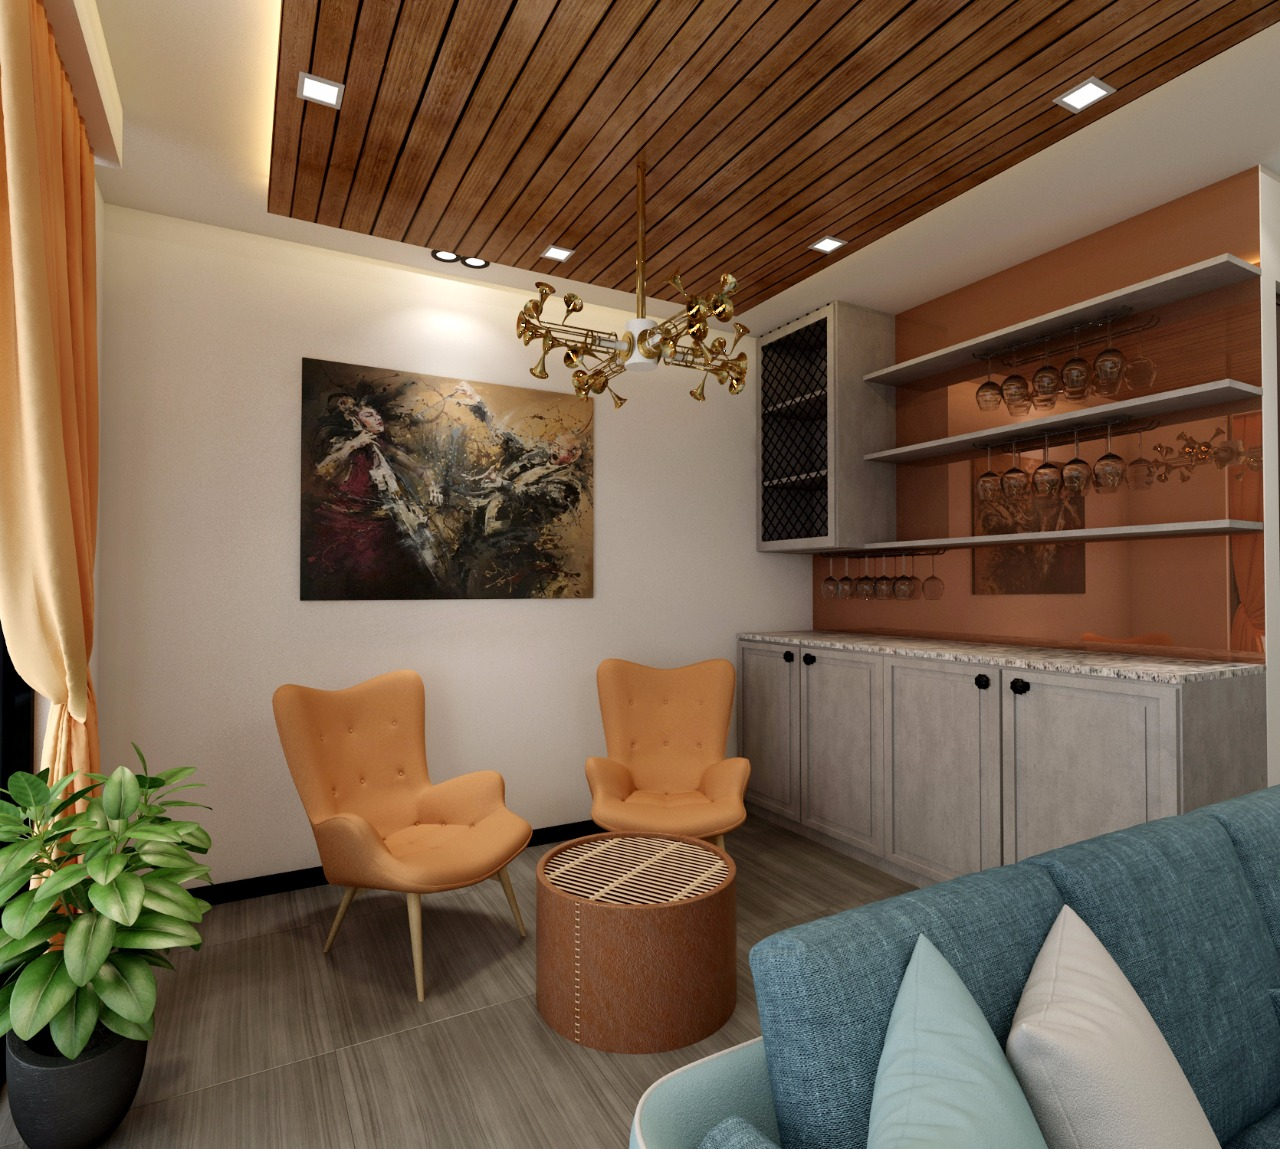 Top 10 Trusted Interior Design Singapore Firms To Work With In 2021 by Redbrick Homes